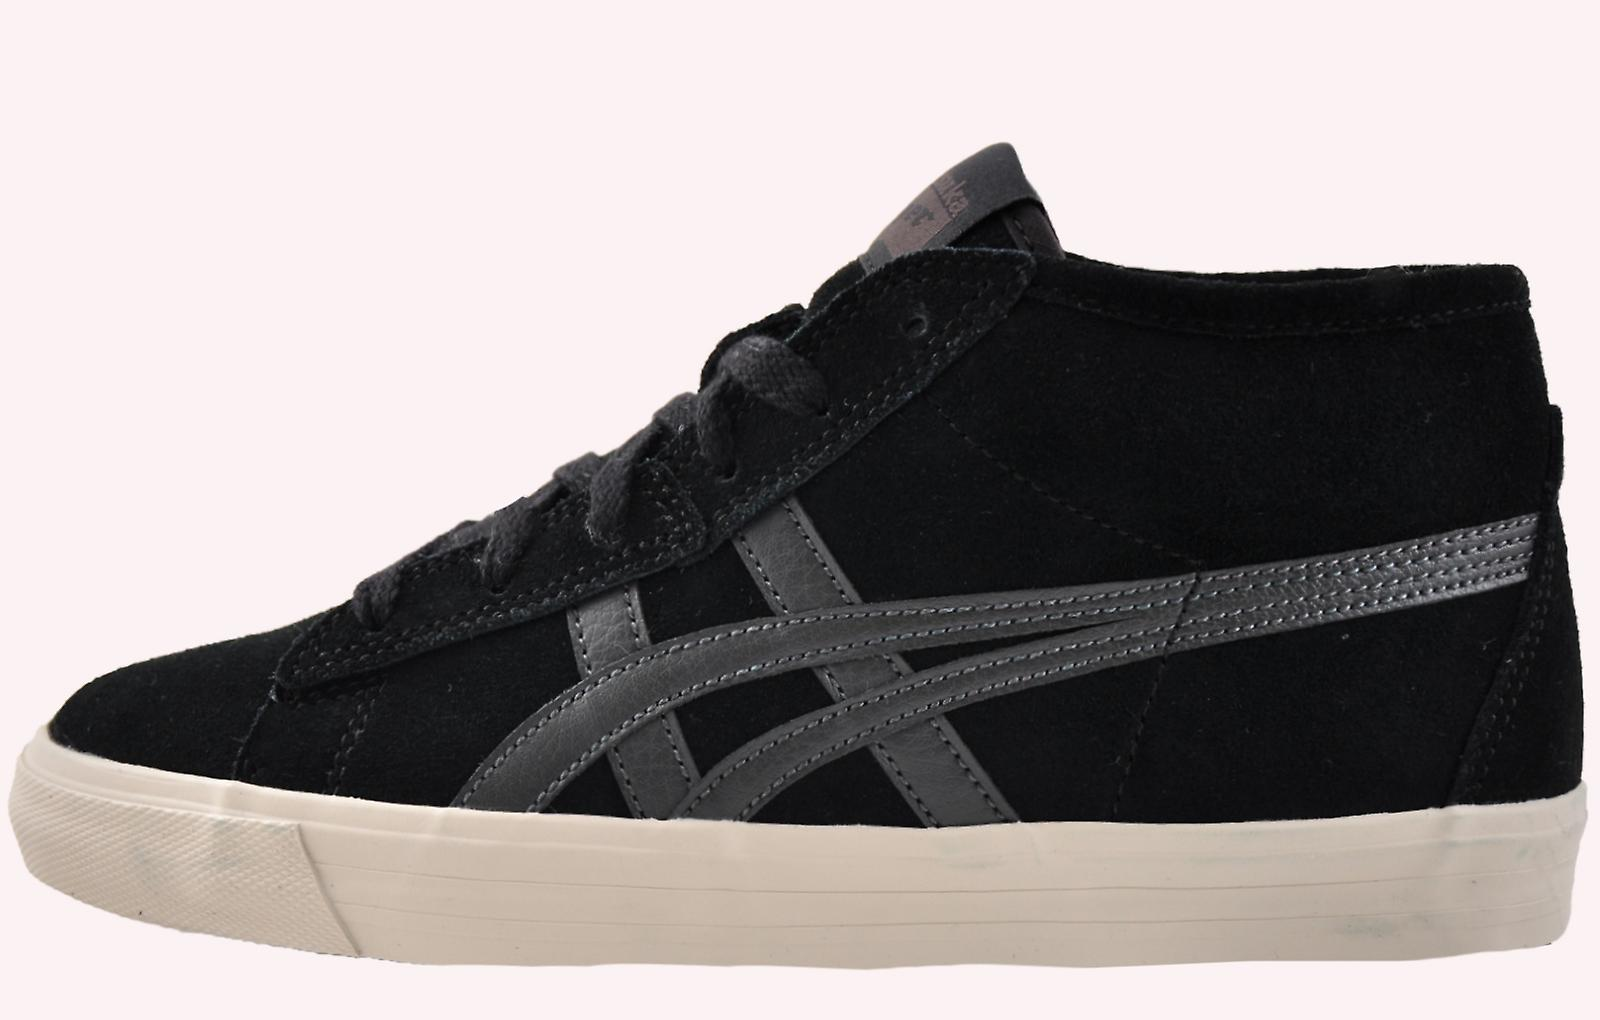 Onitsuka Tiger Fader Mid Black / Dark Grey